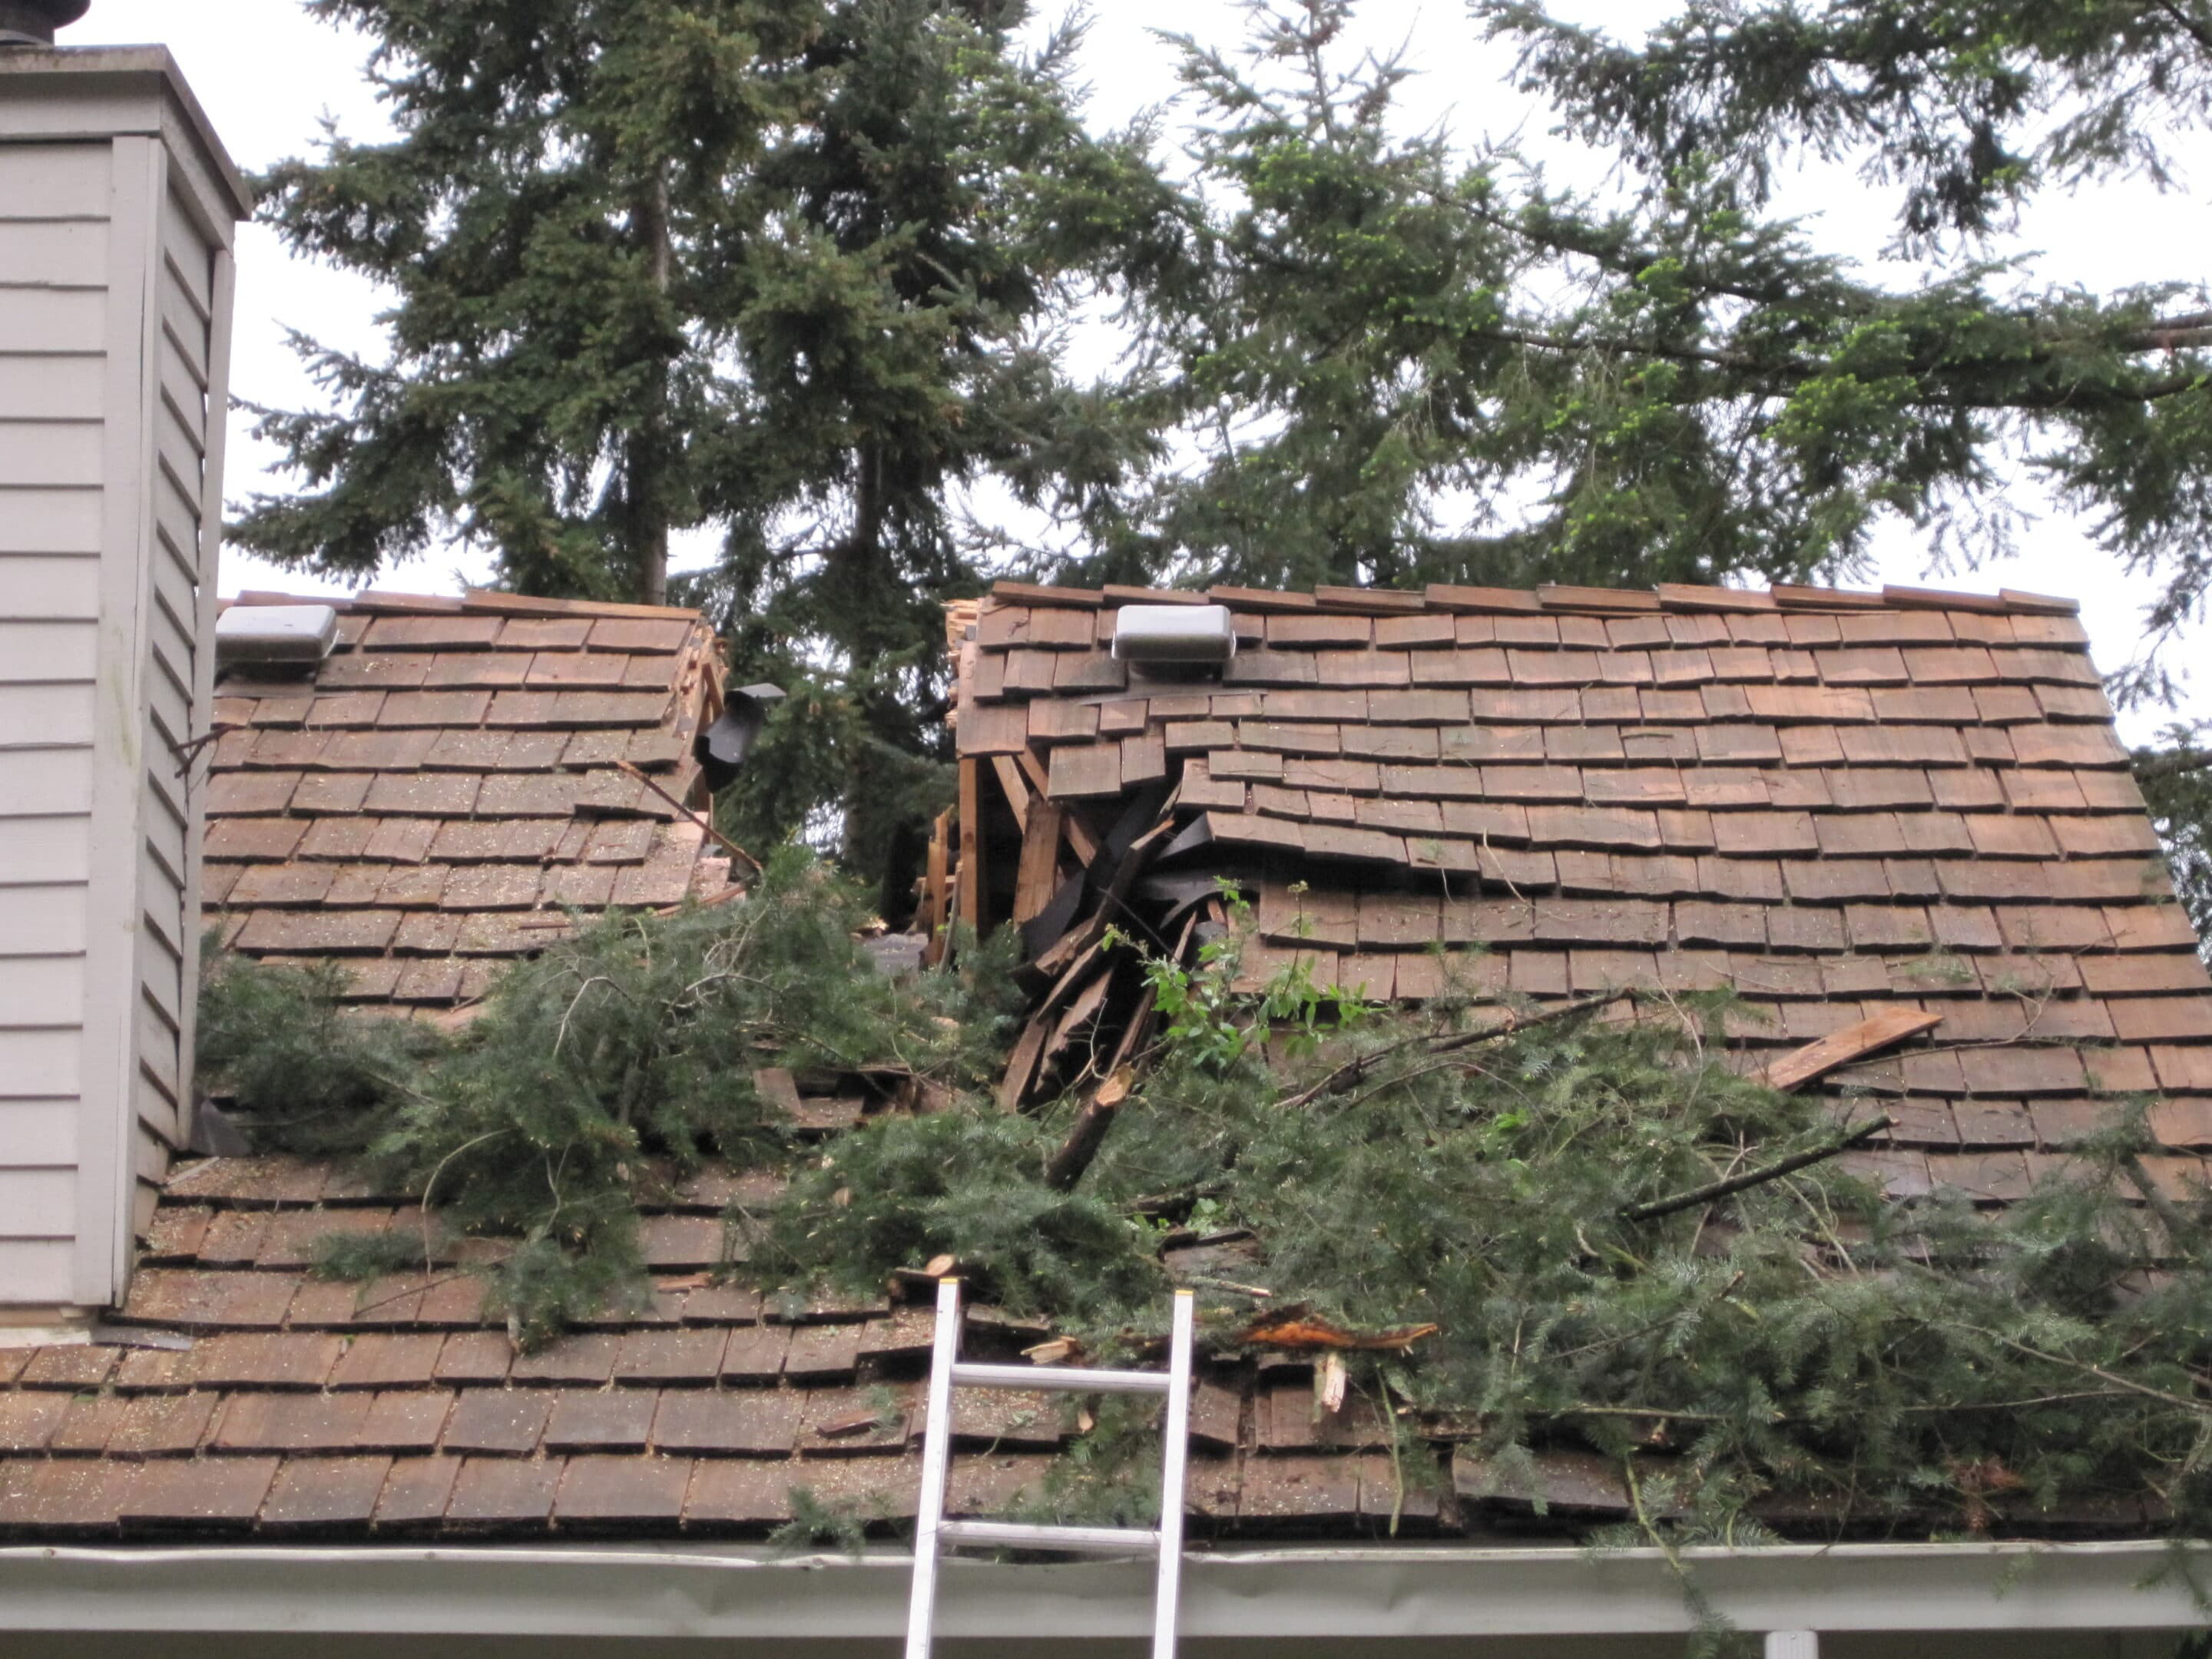 structural engineering for repairs to house